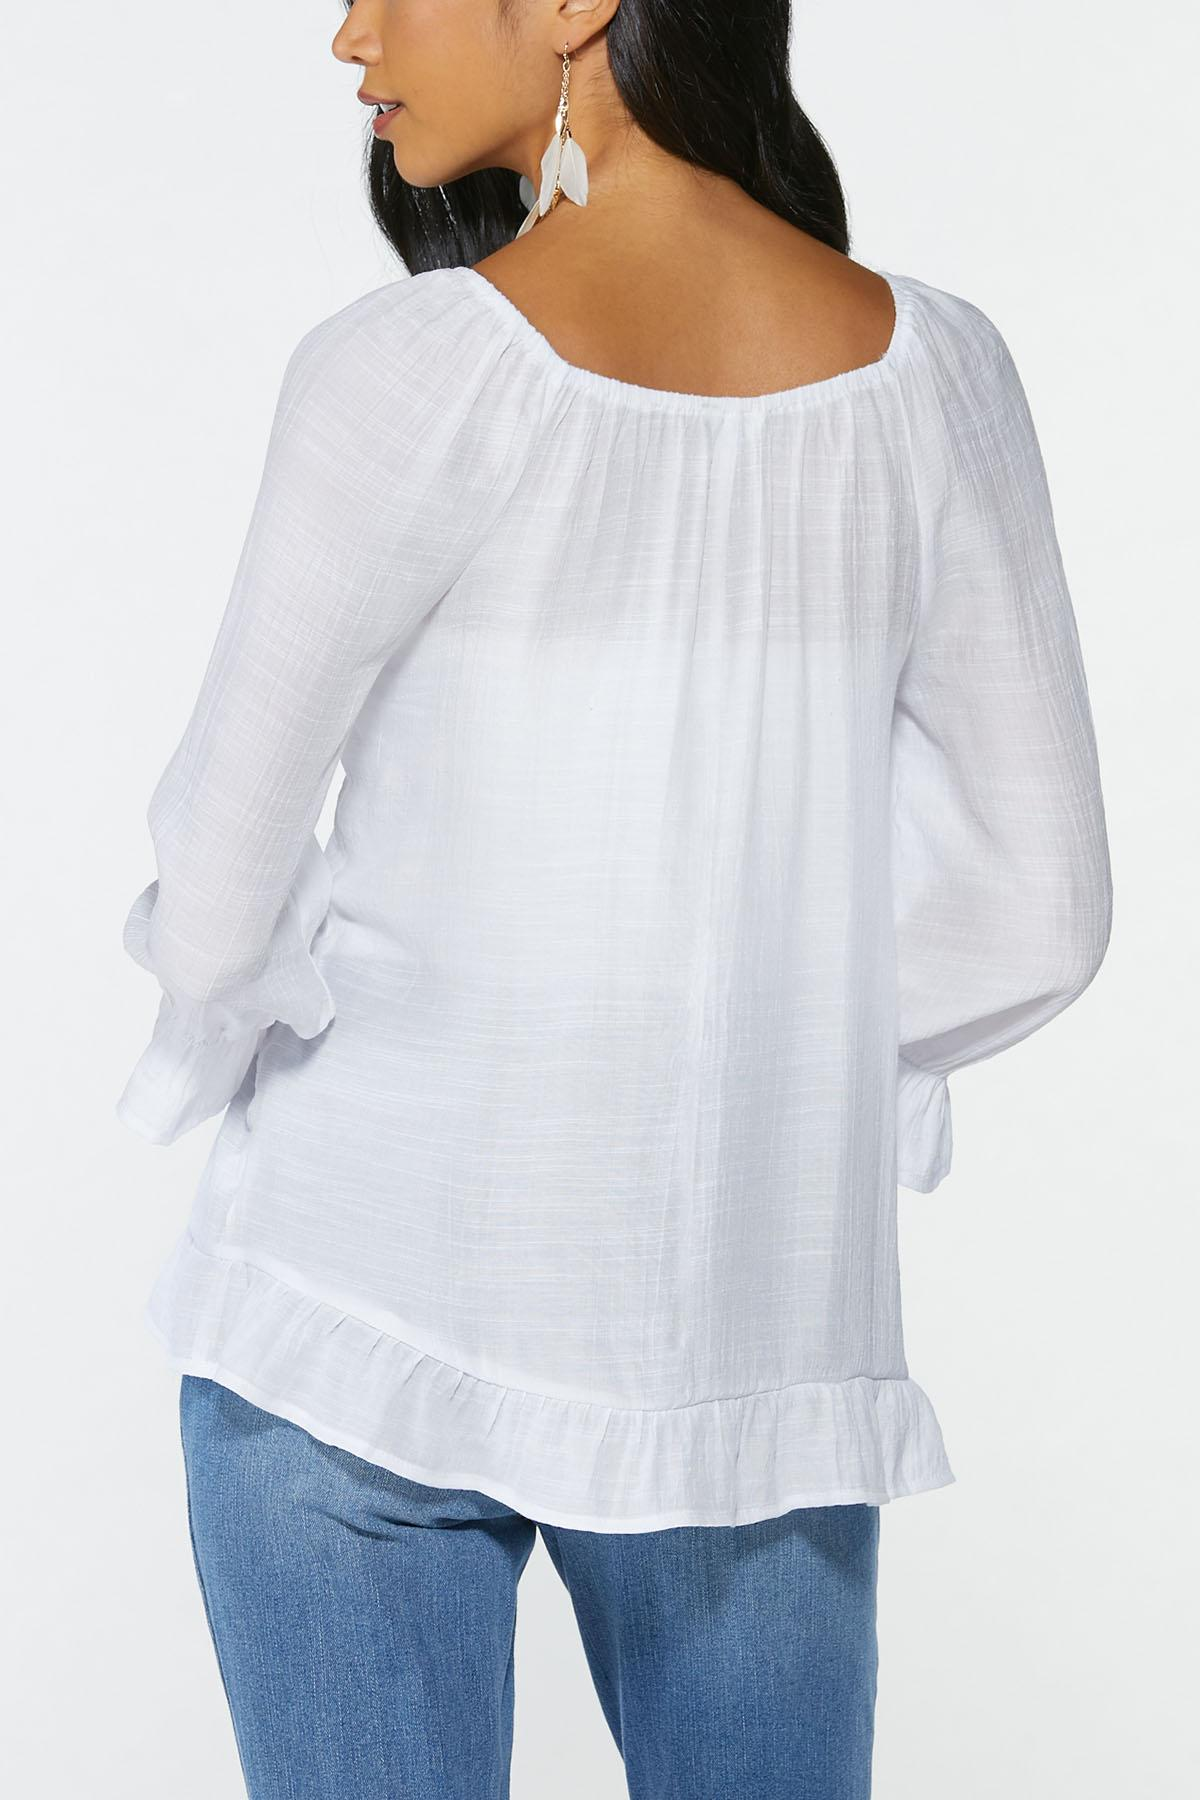 Cinched Front Top (Item #44692327)